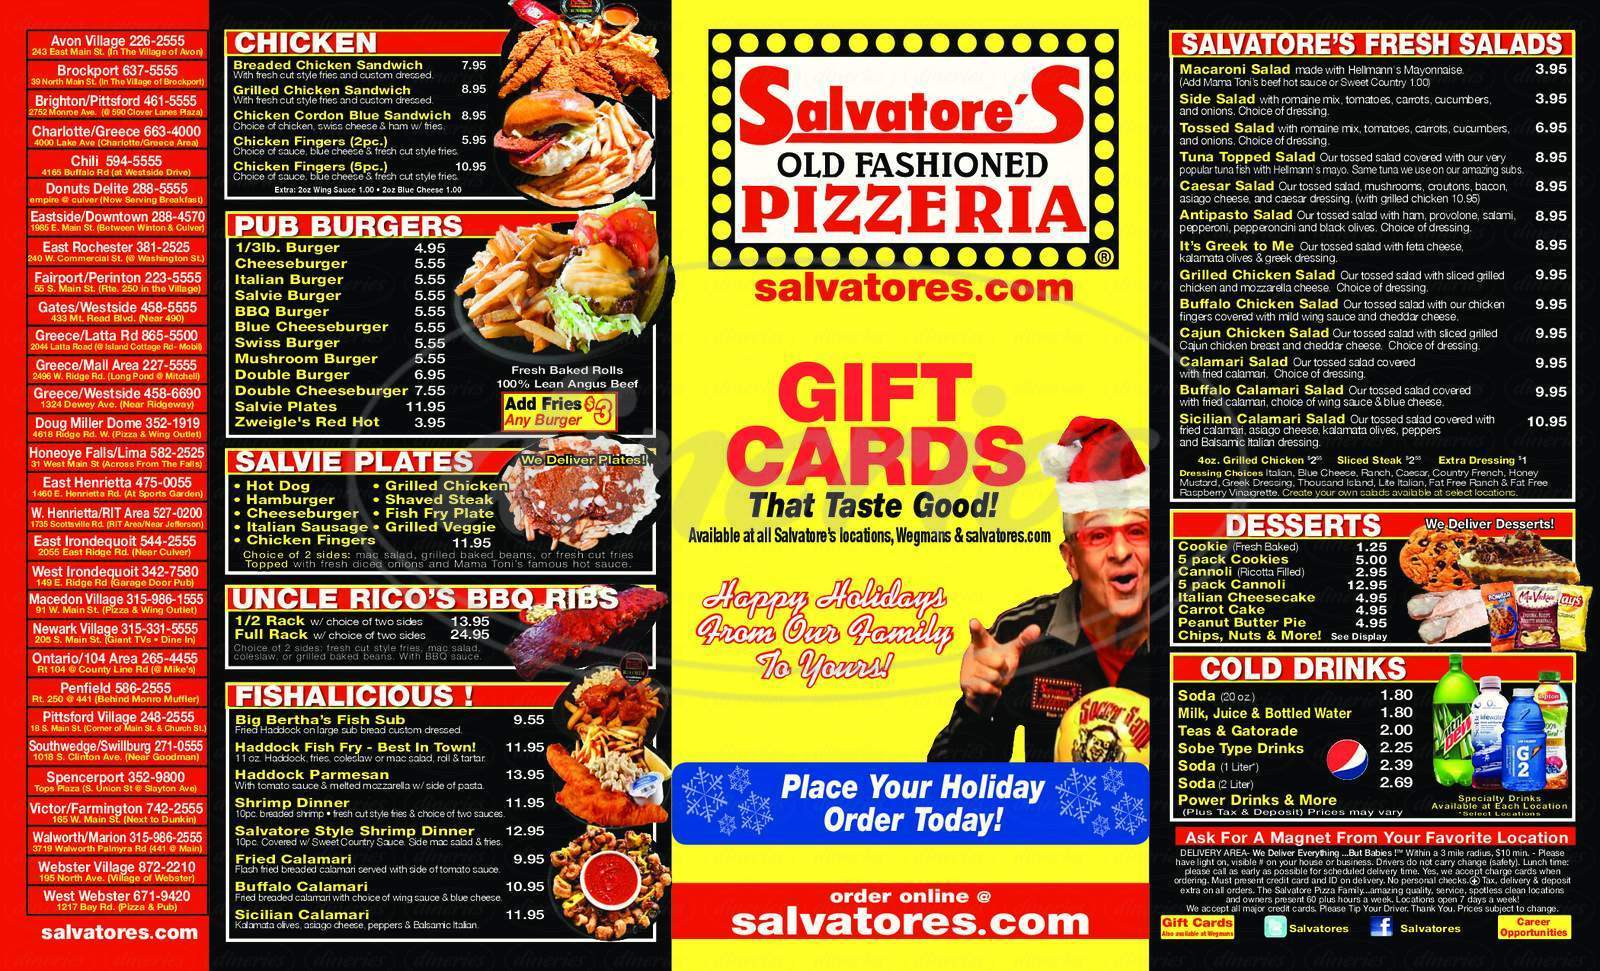 menu for Salvatore's Old Fashioned Pizzeria